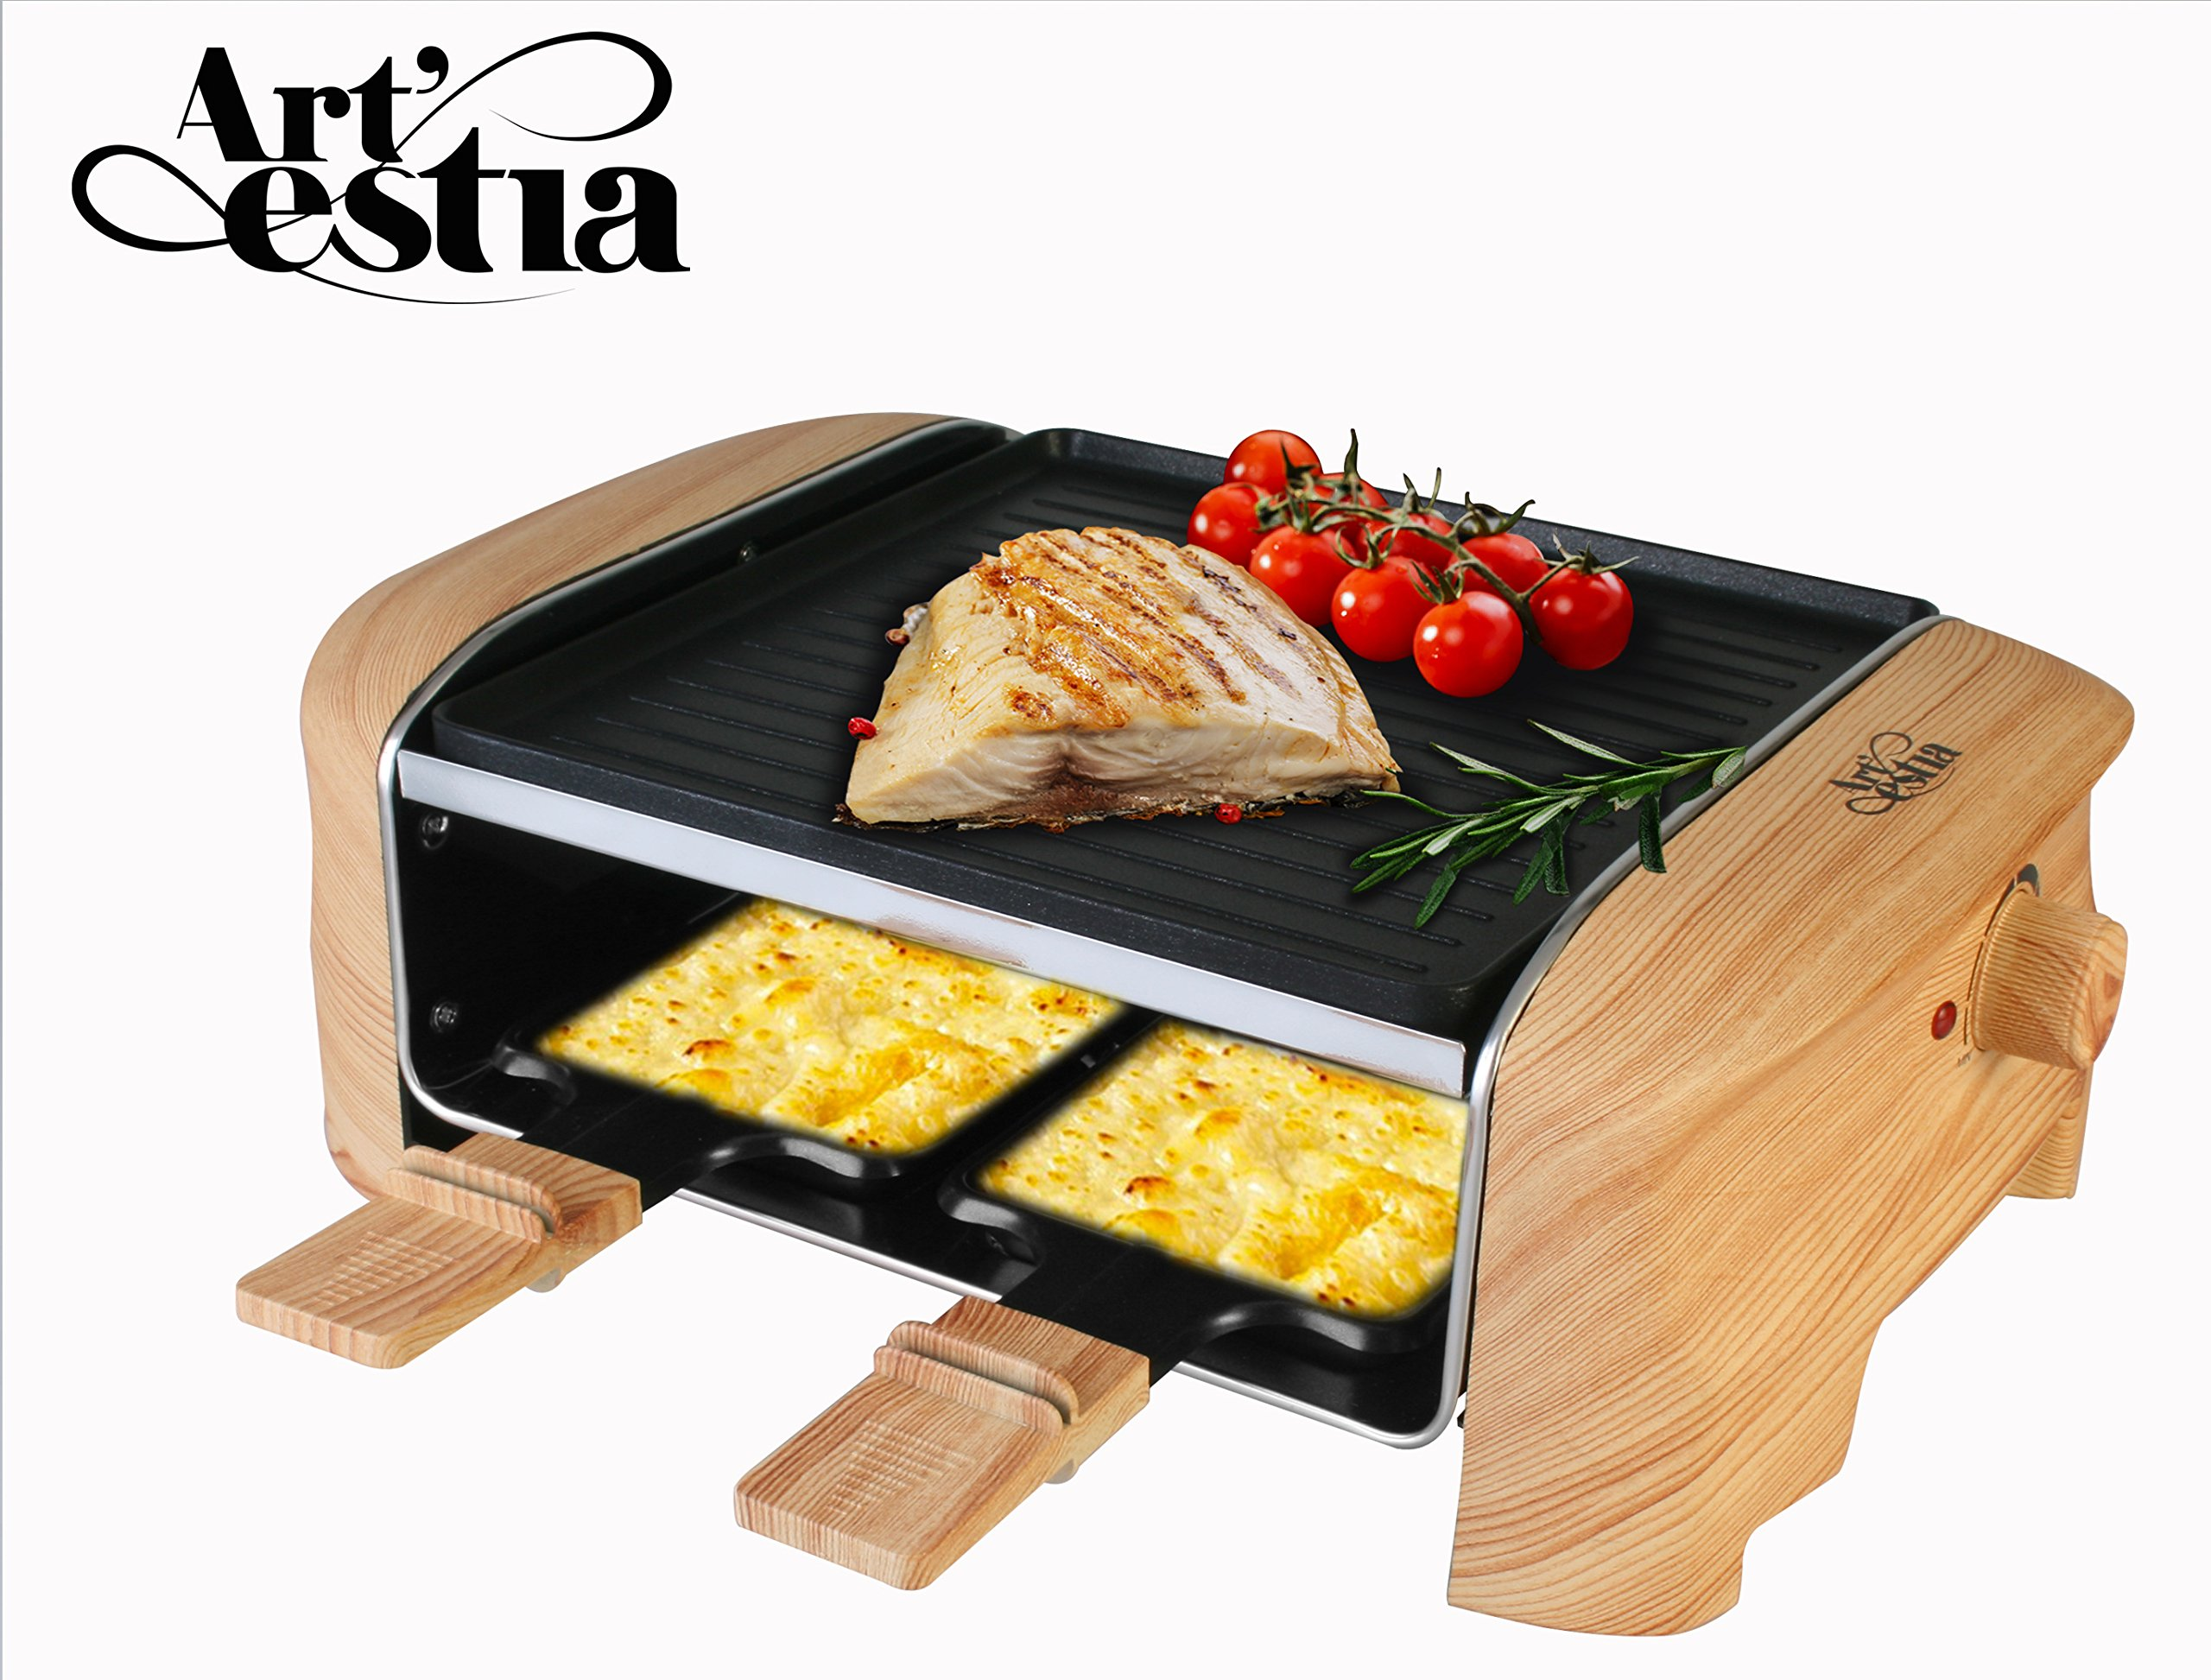 Artestia Electric Raclette Grill with Non-Stick Aluminum Plate, 600W Max Power ETL Certified (Aluminum Reversible Plate Half Size Raclette)